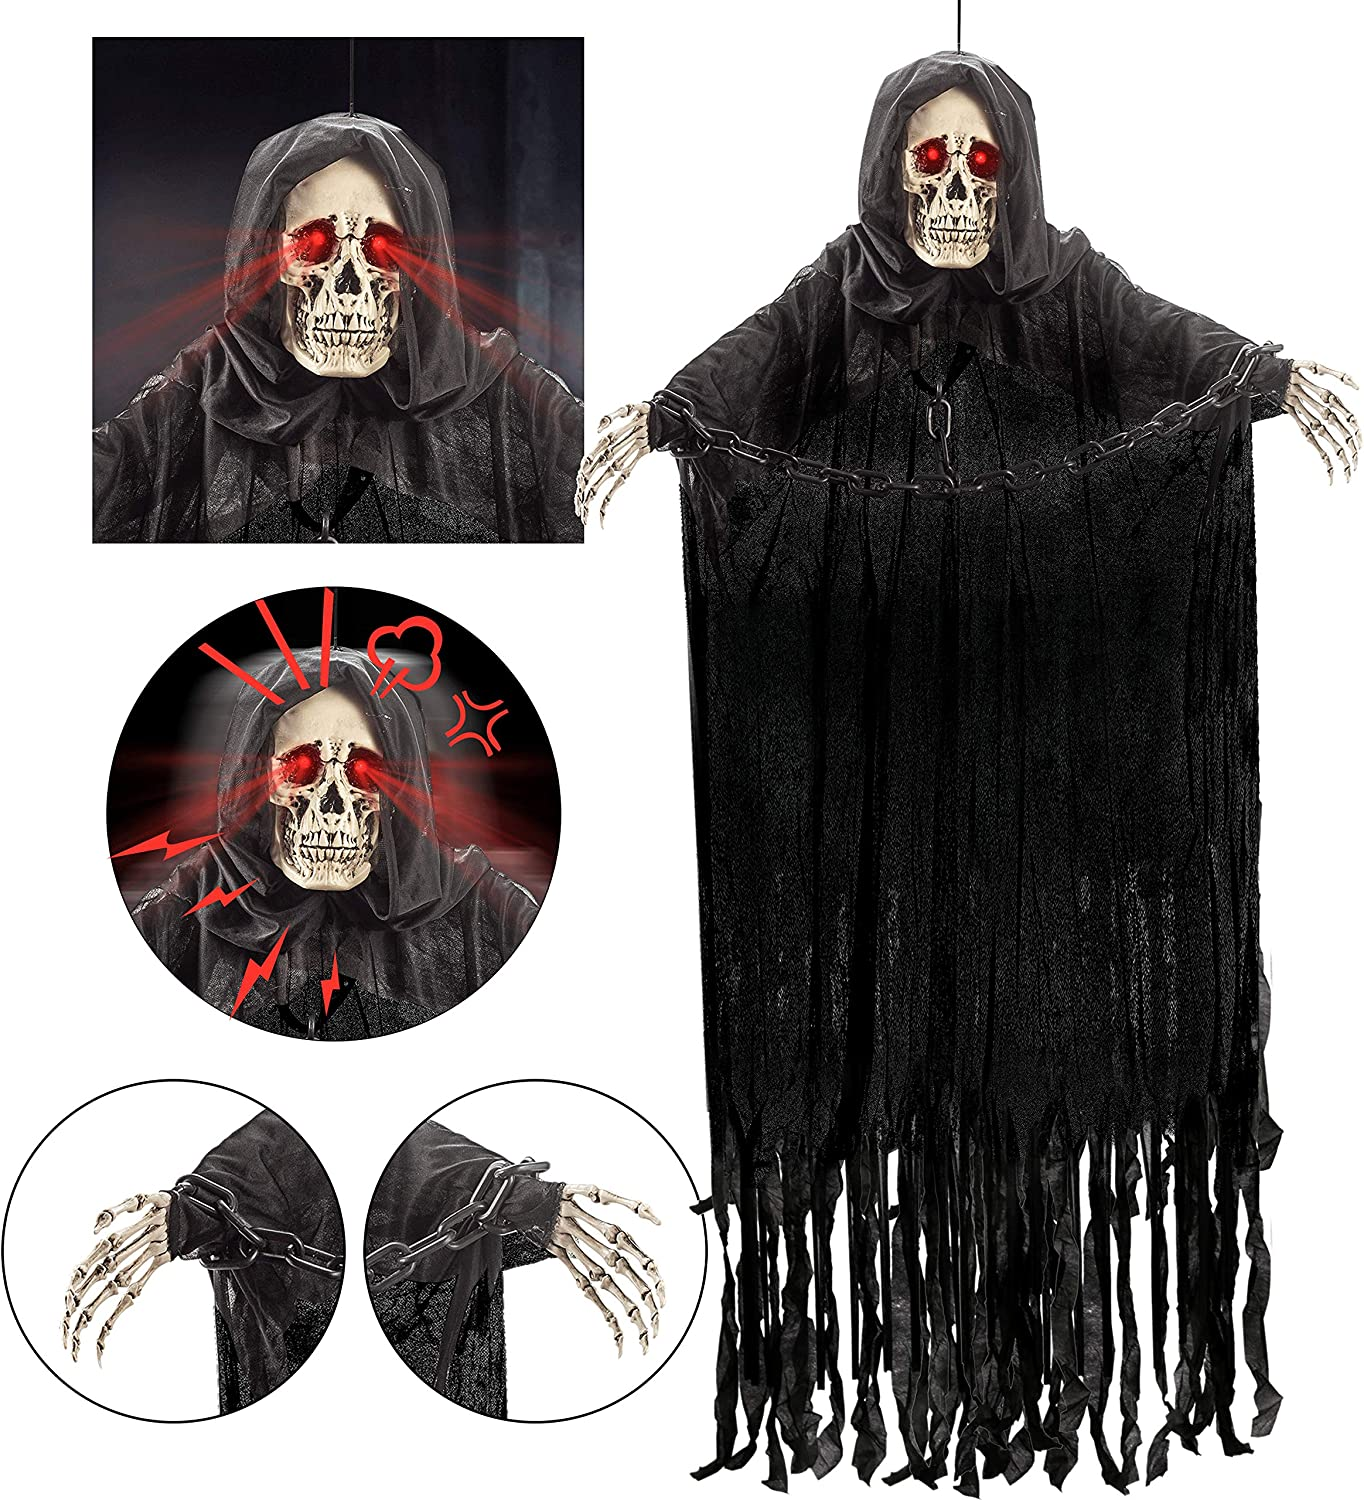 "60"" Animated Hanging Grim Reaper with Chain and creepy sound, Halloween Skeleton Ghost Decorations for Haunted House Prop Decor, Outdoor/Indoor, Lawn Decorations"